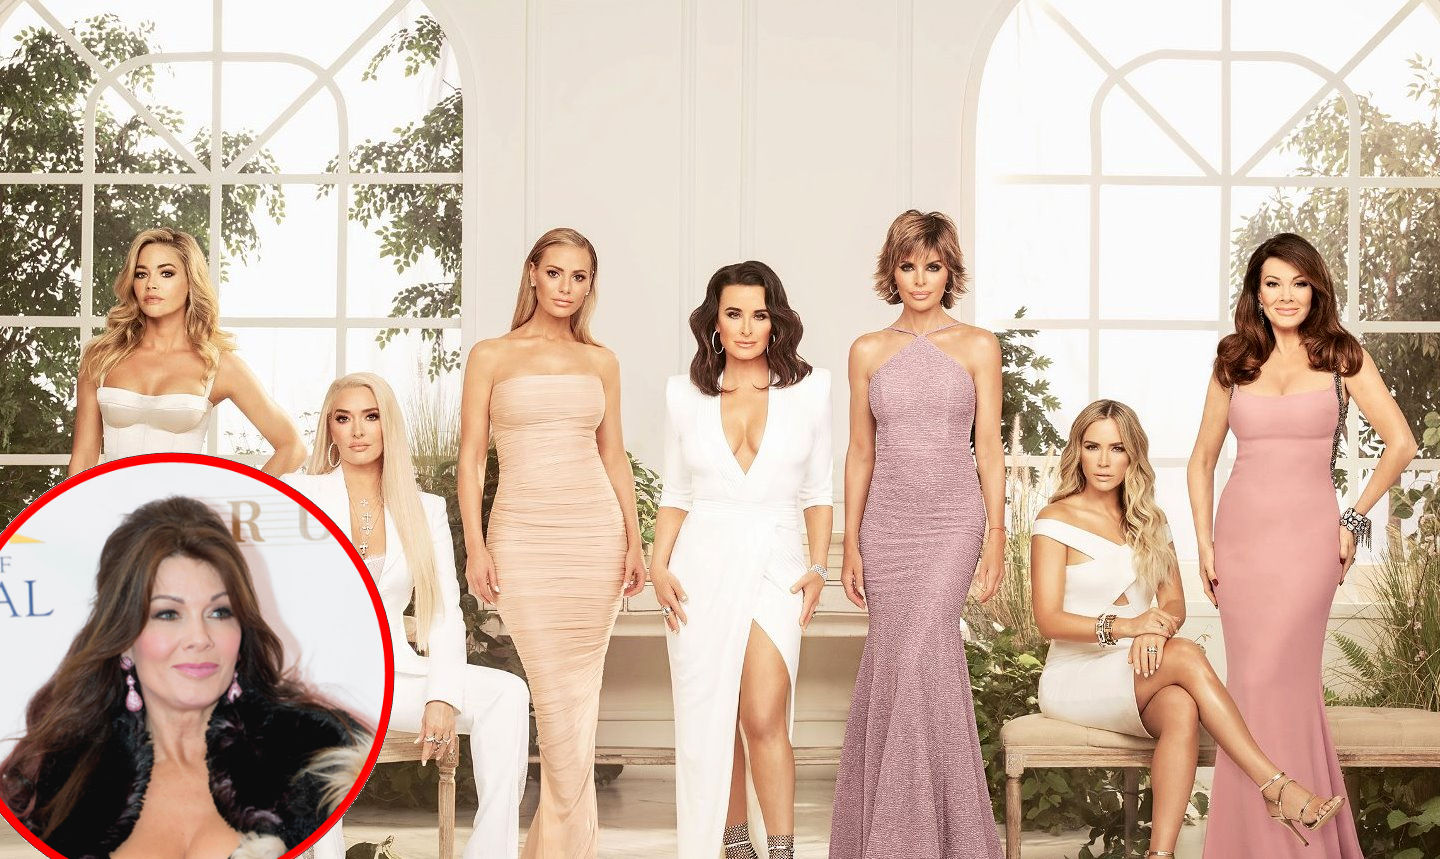 Is Bravo Considering Firing RHOBH Cast Members After Puppy Gate? Plus Lisa Vanderpump to Appear on Just One More Episode of RHOBH